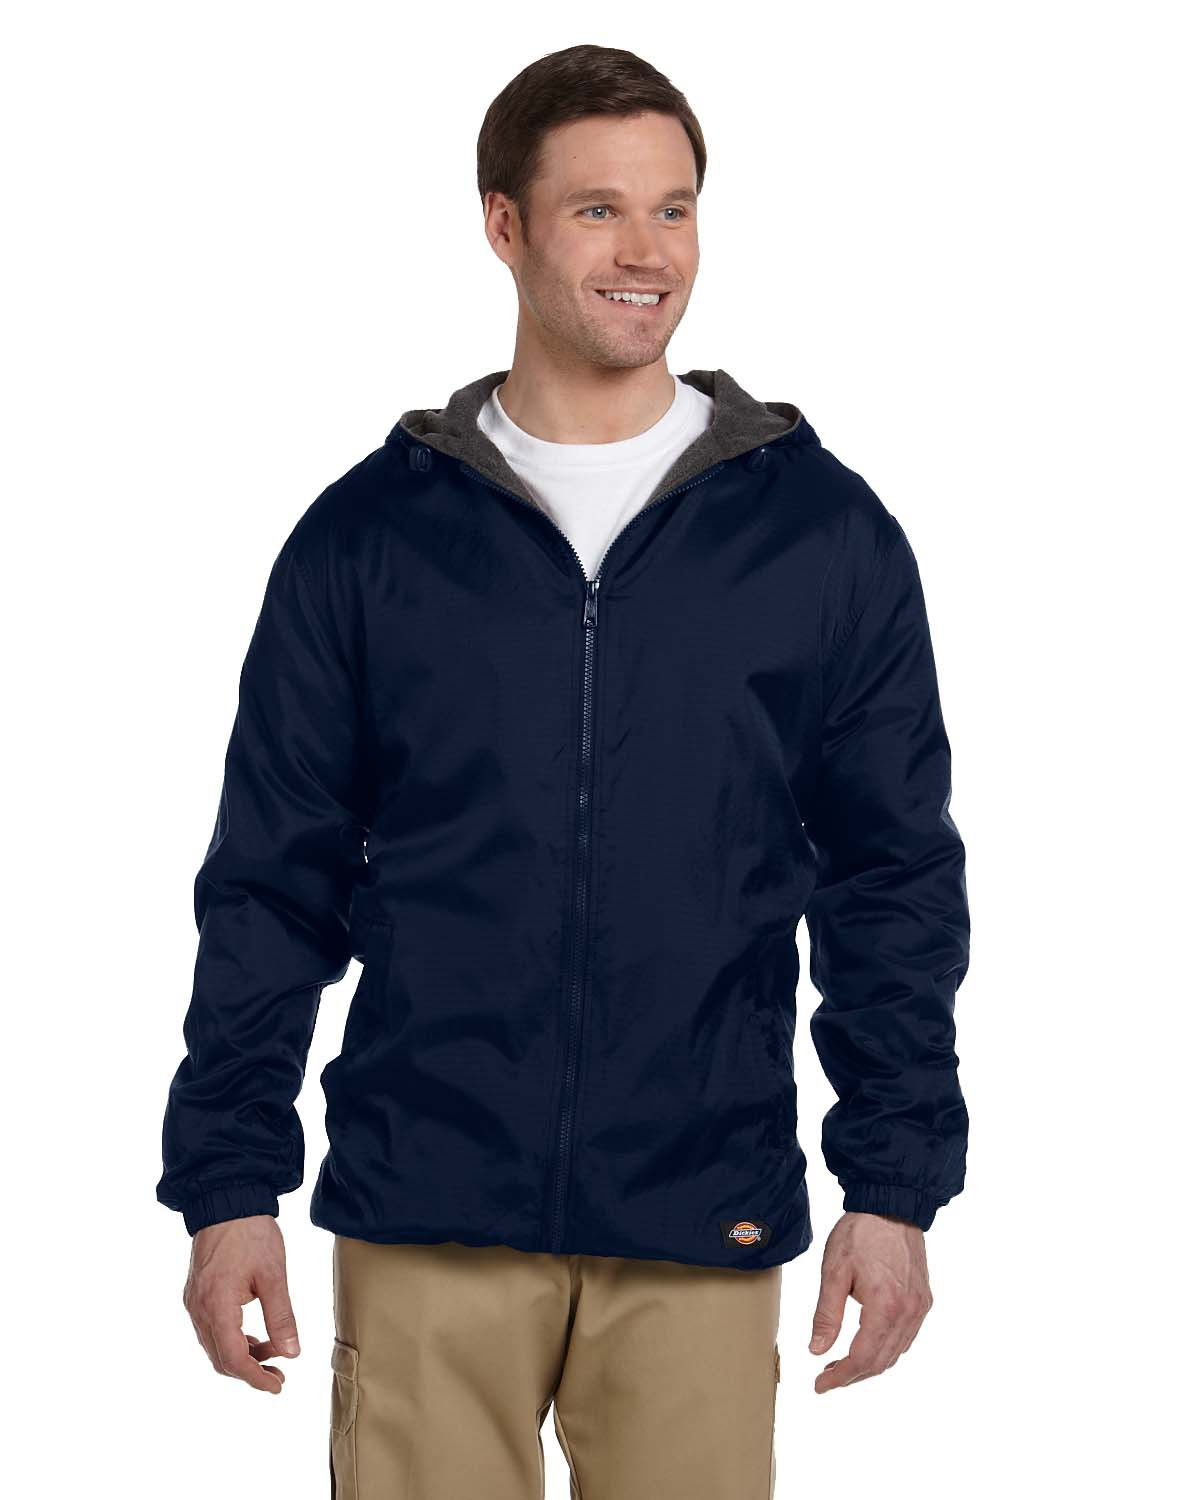 Dri Duck 33237 - Adult Fleece-Lined Rip Stop Jacket